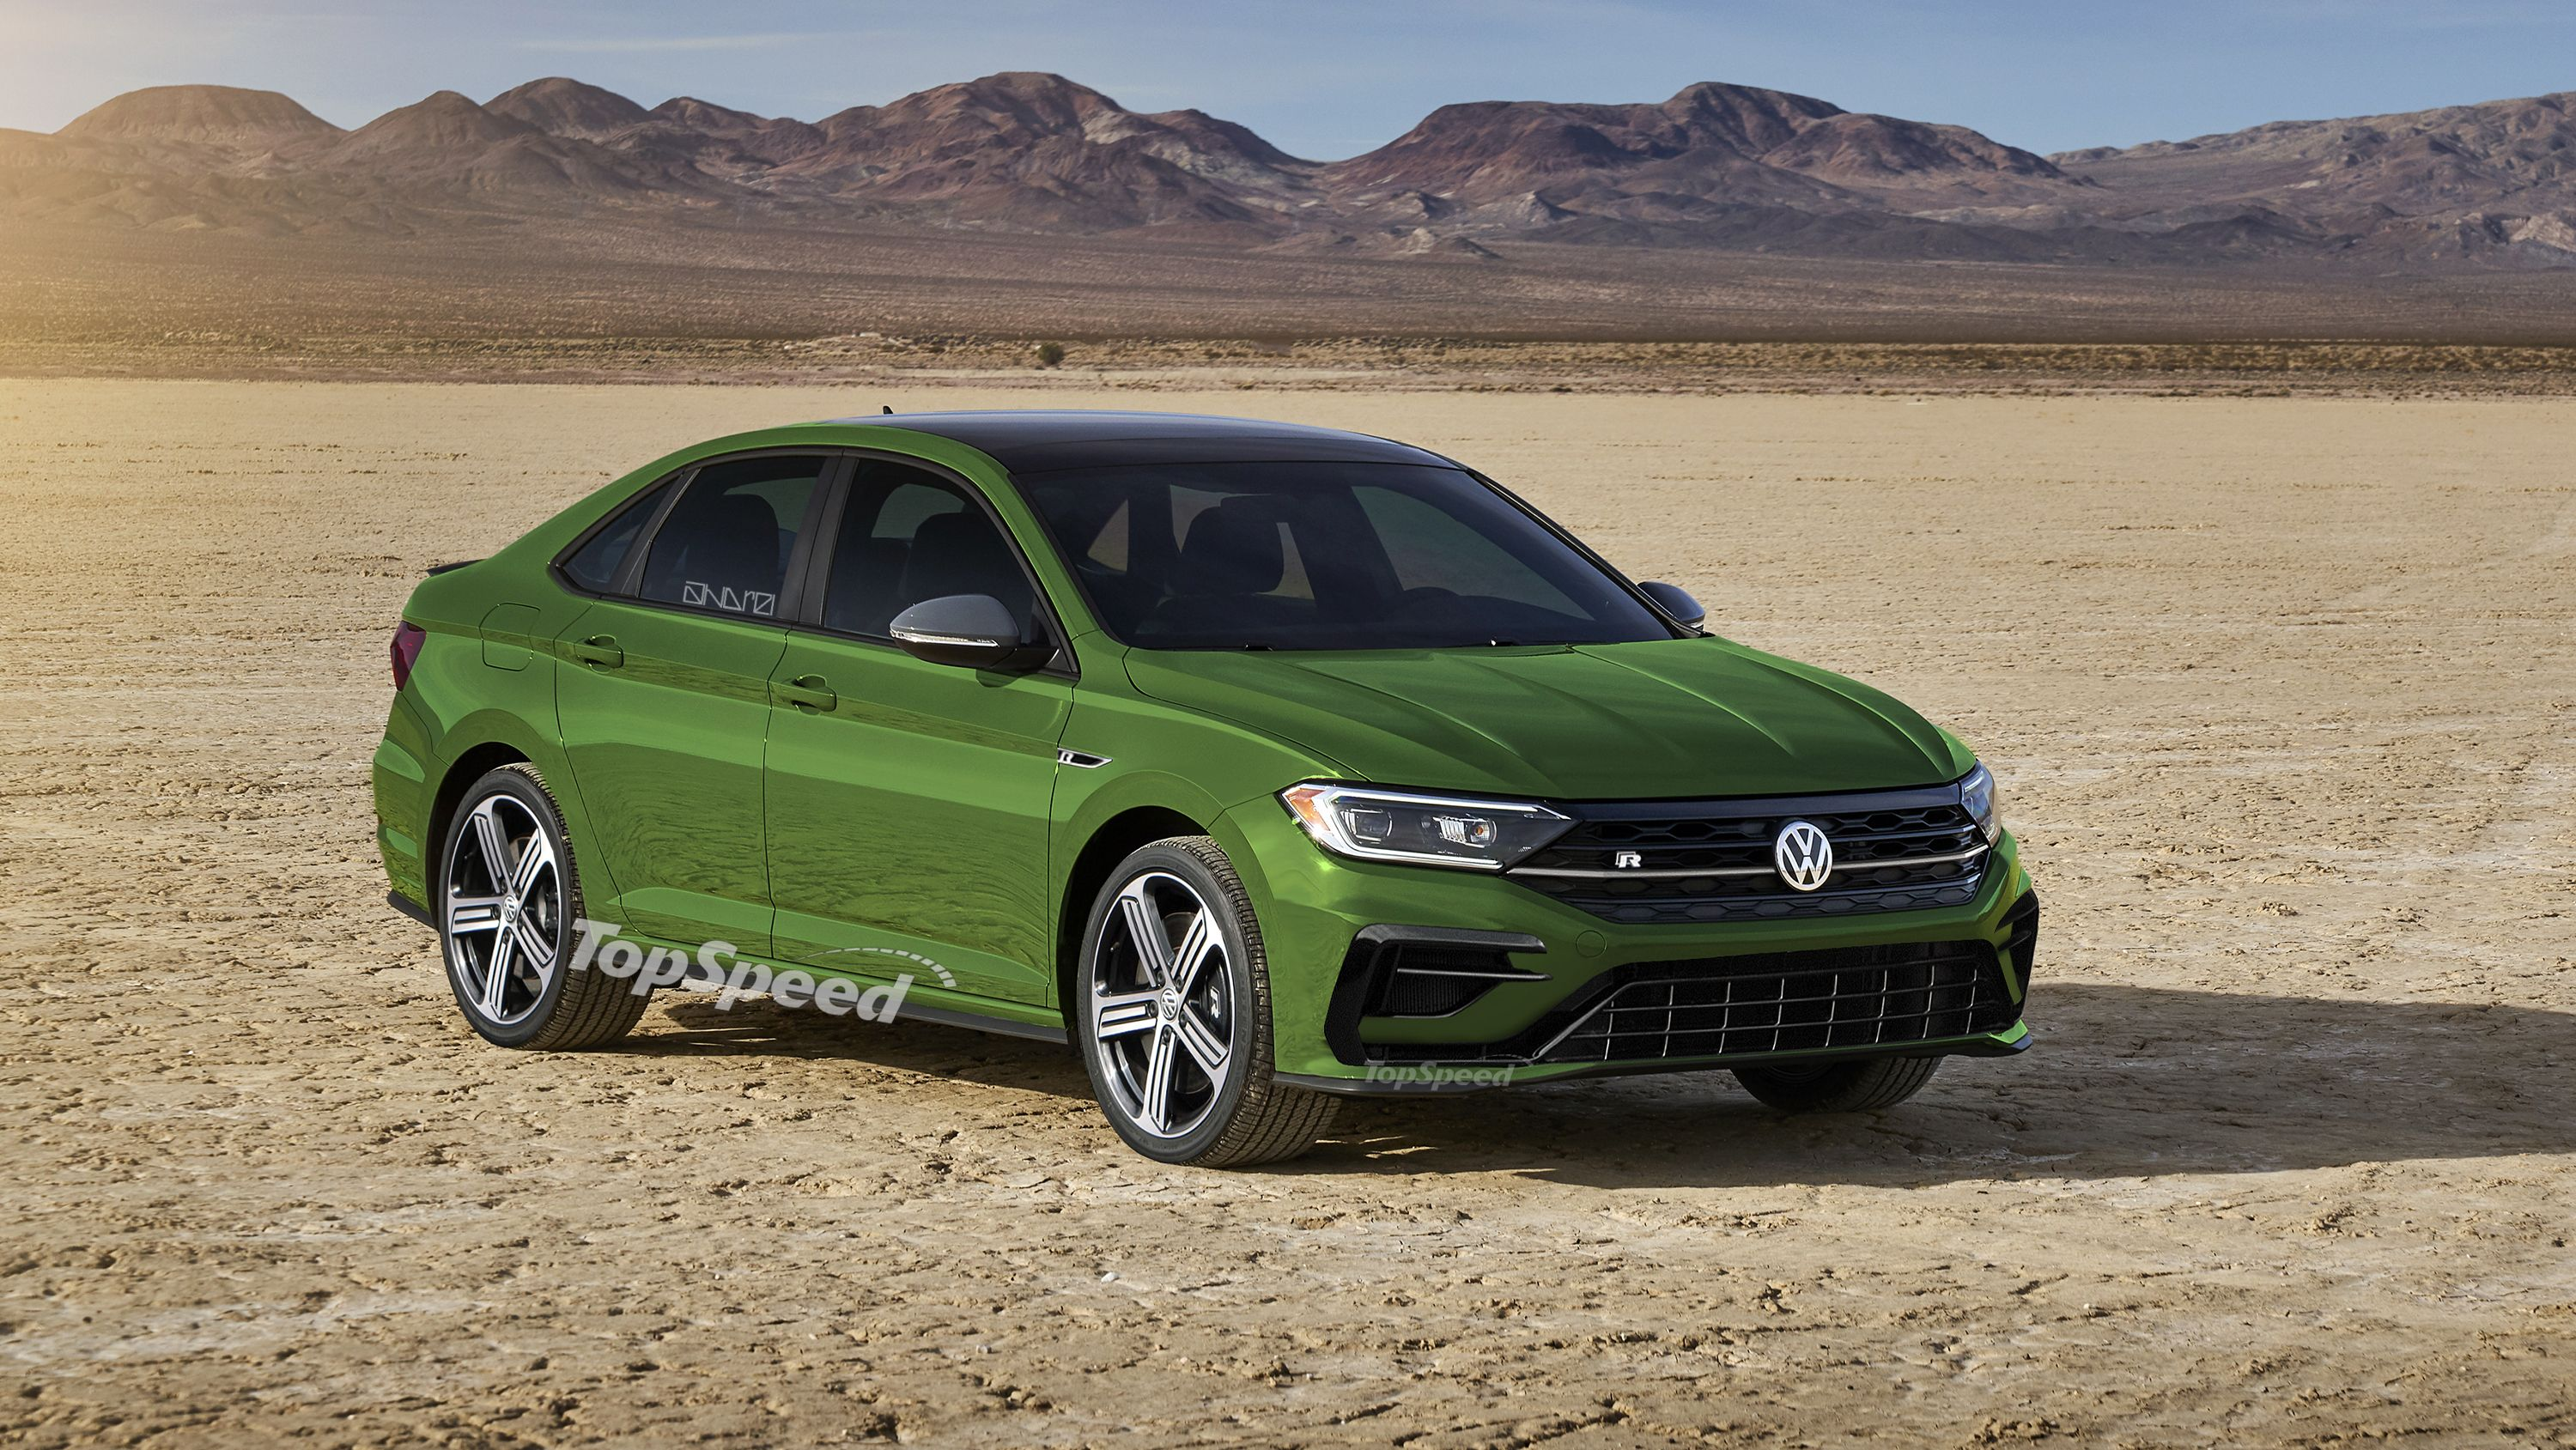 Is There Be Room In The Vw Range For An Even Hotter 2020 Volkswagen Jetta R Top Speed Volkswagen Jetta Volkswagen Volkswagen Cc Sport